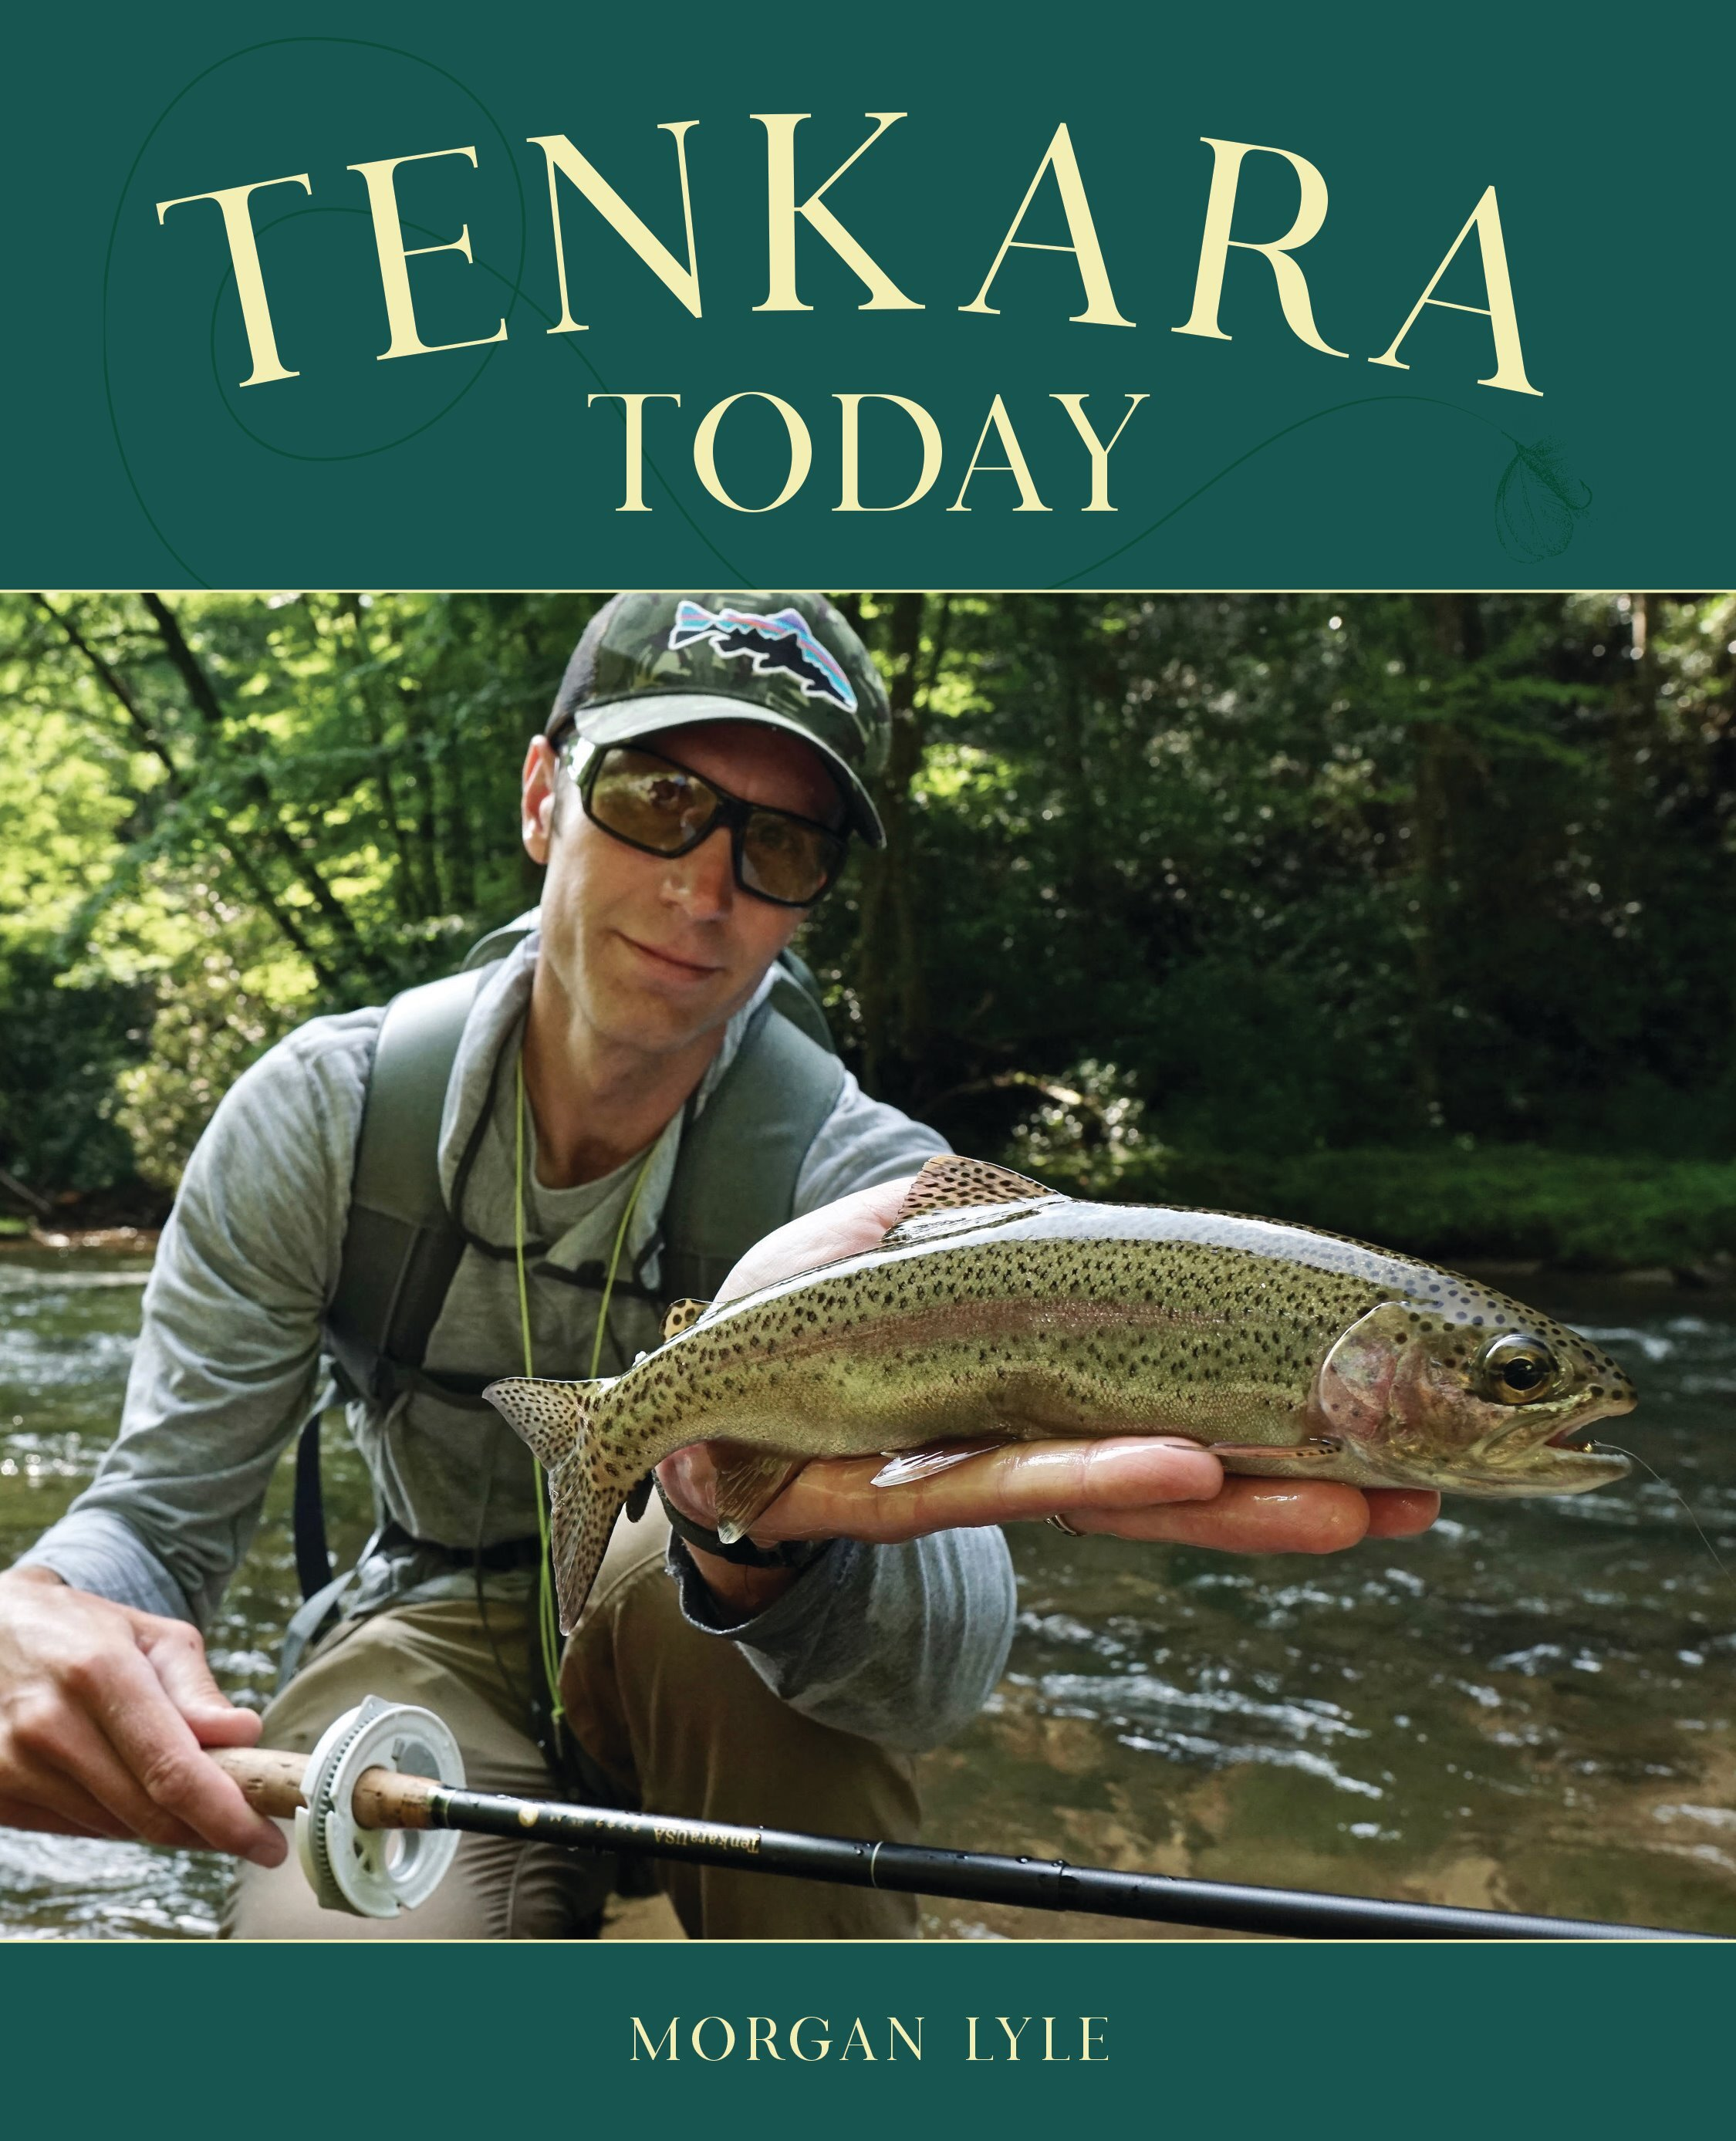 Tenkara Today by Morgan Lyle, who will speak at Arts of the Angler on Saturday, Nov. 9, at 1 p.m.